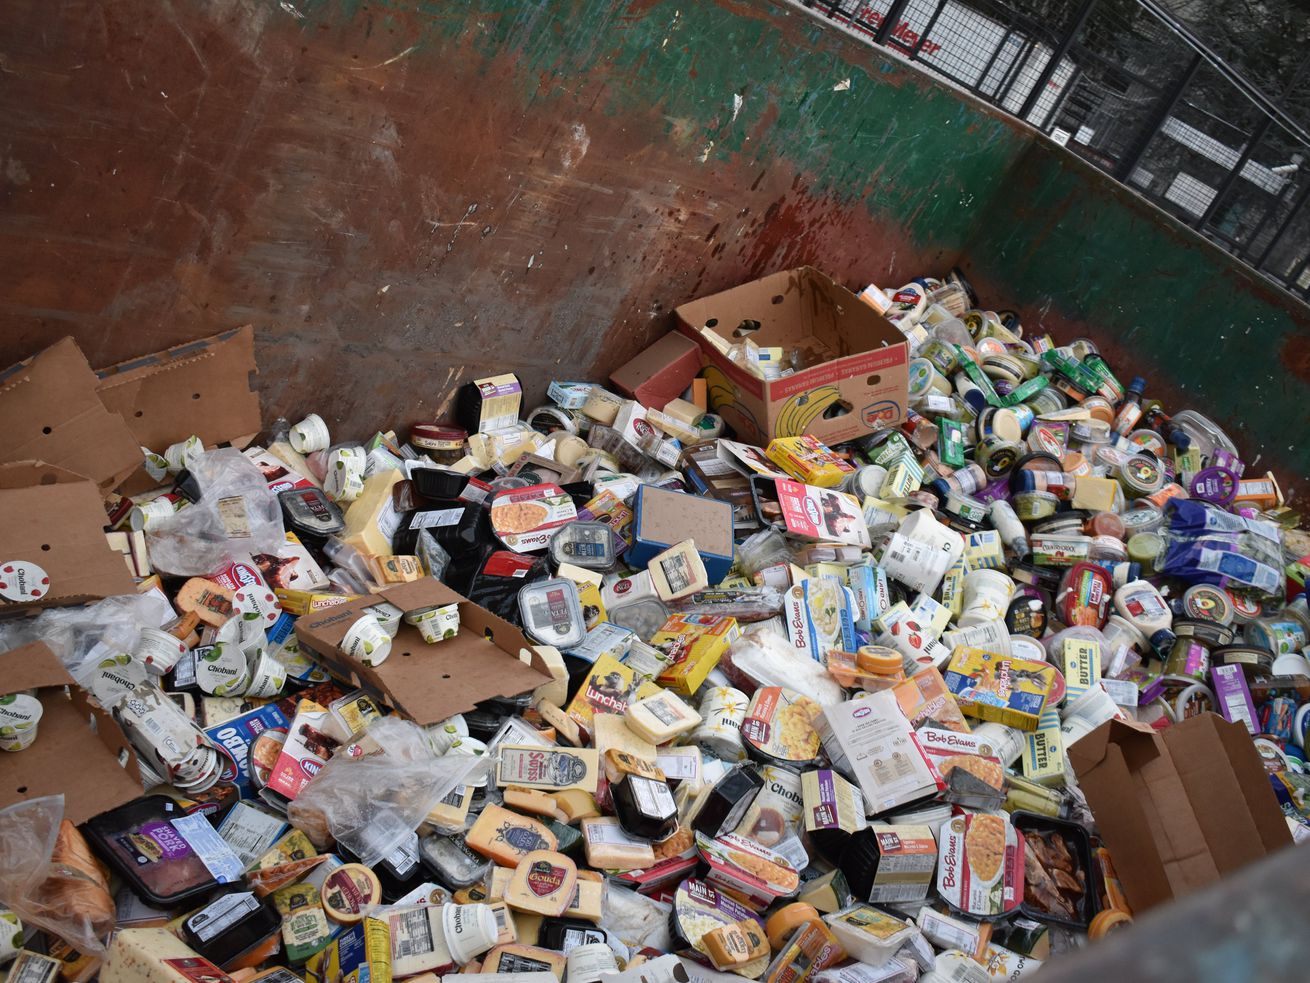 A dumpster filled with cheese and other perishable groceries at Fred Meyer